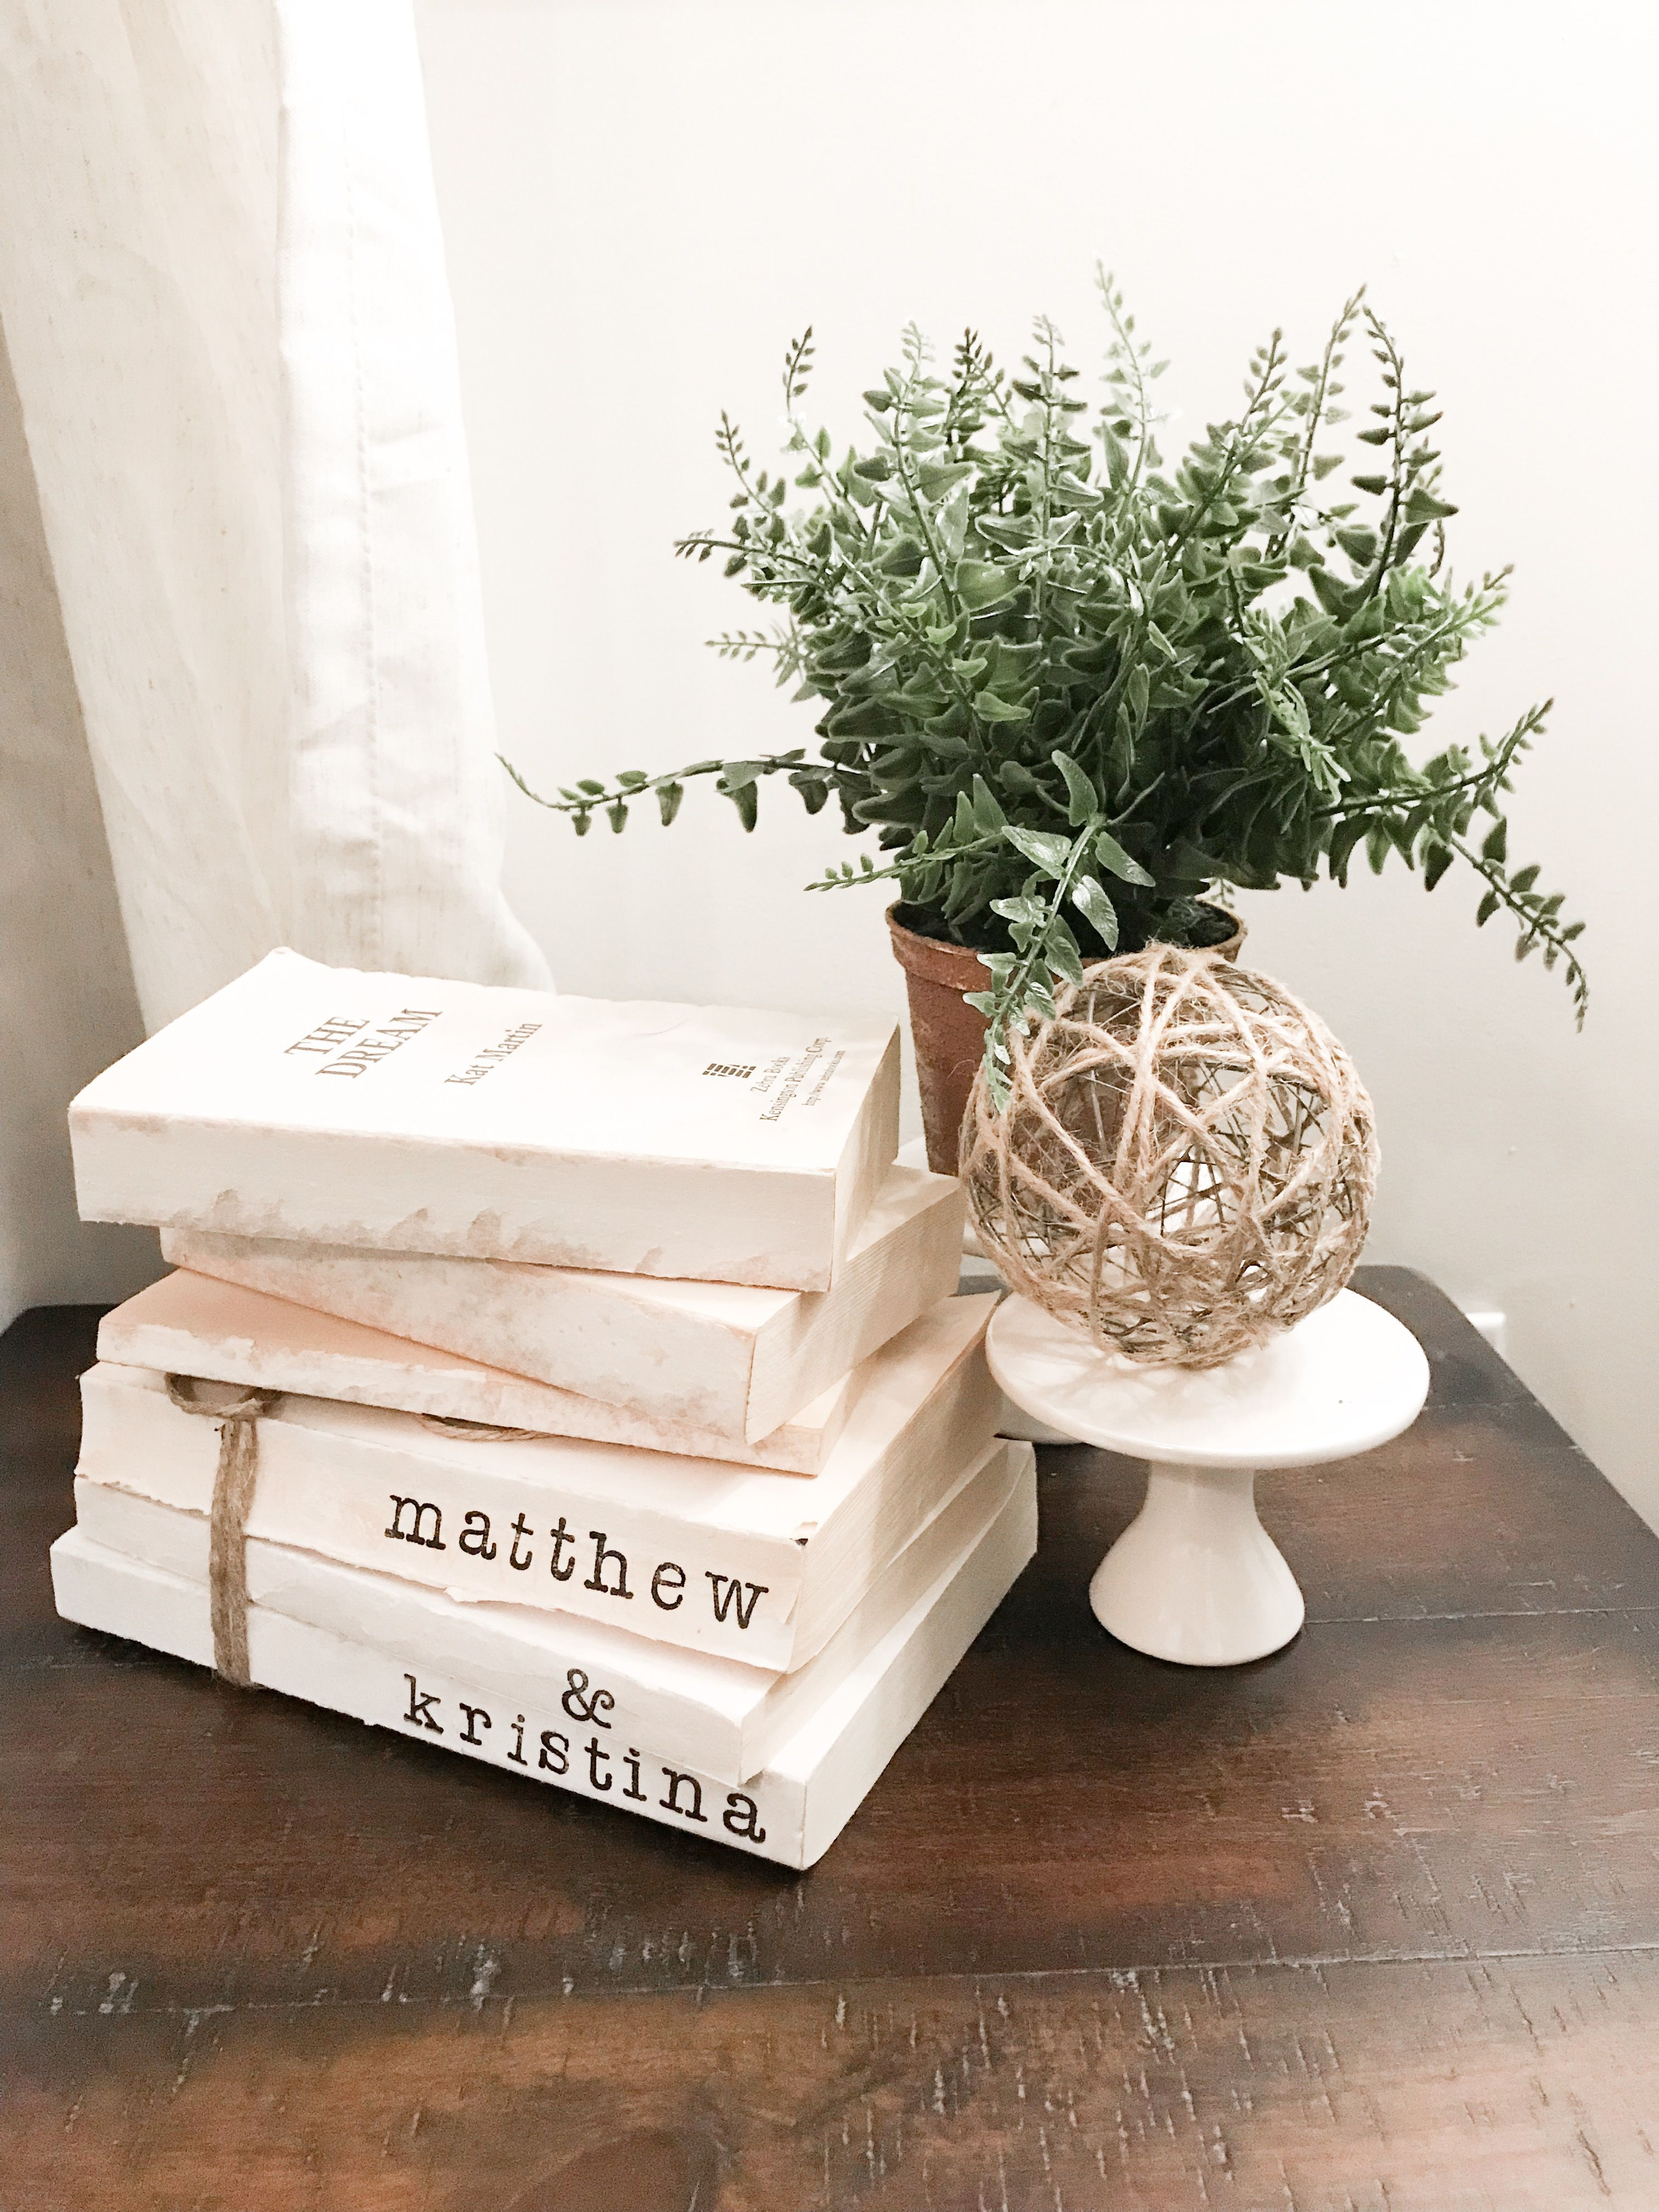 Simple Home Decor Ideas With Old Books